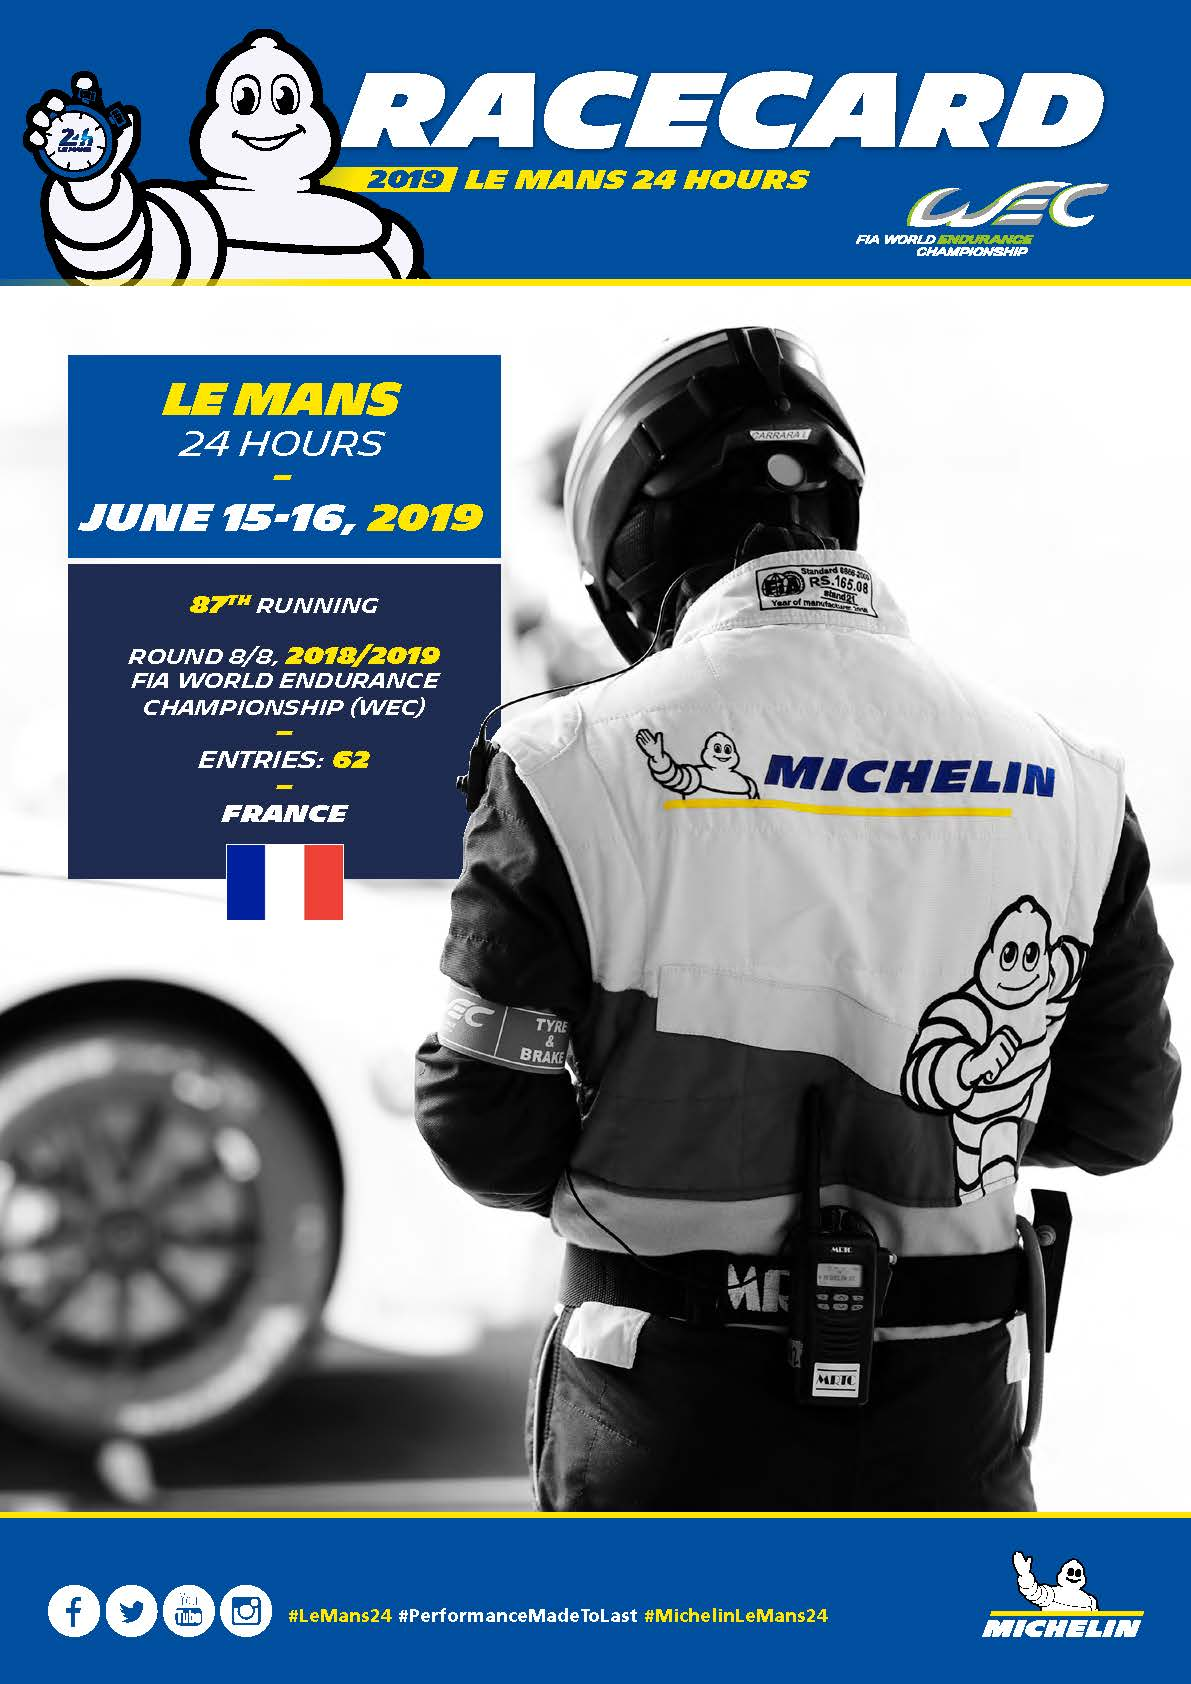 Michelin_Racecard_WEC_LeMans_2019_UK_Page_01